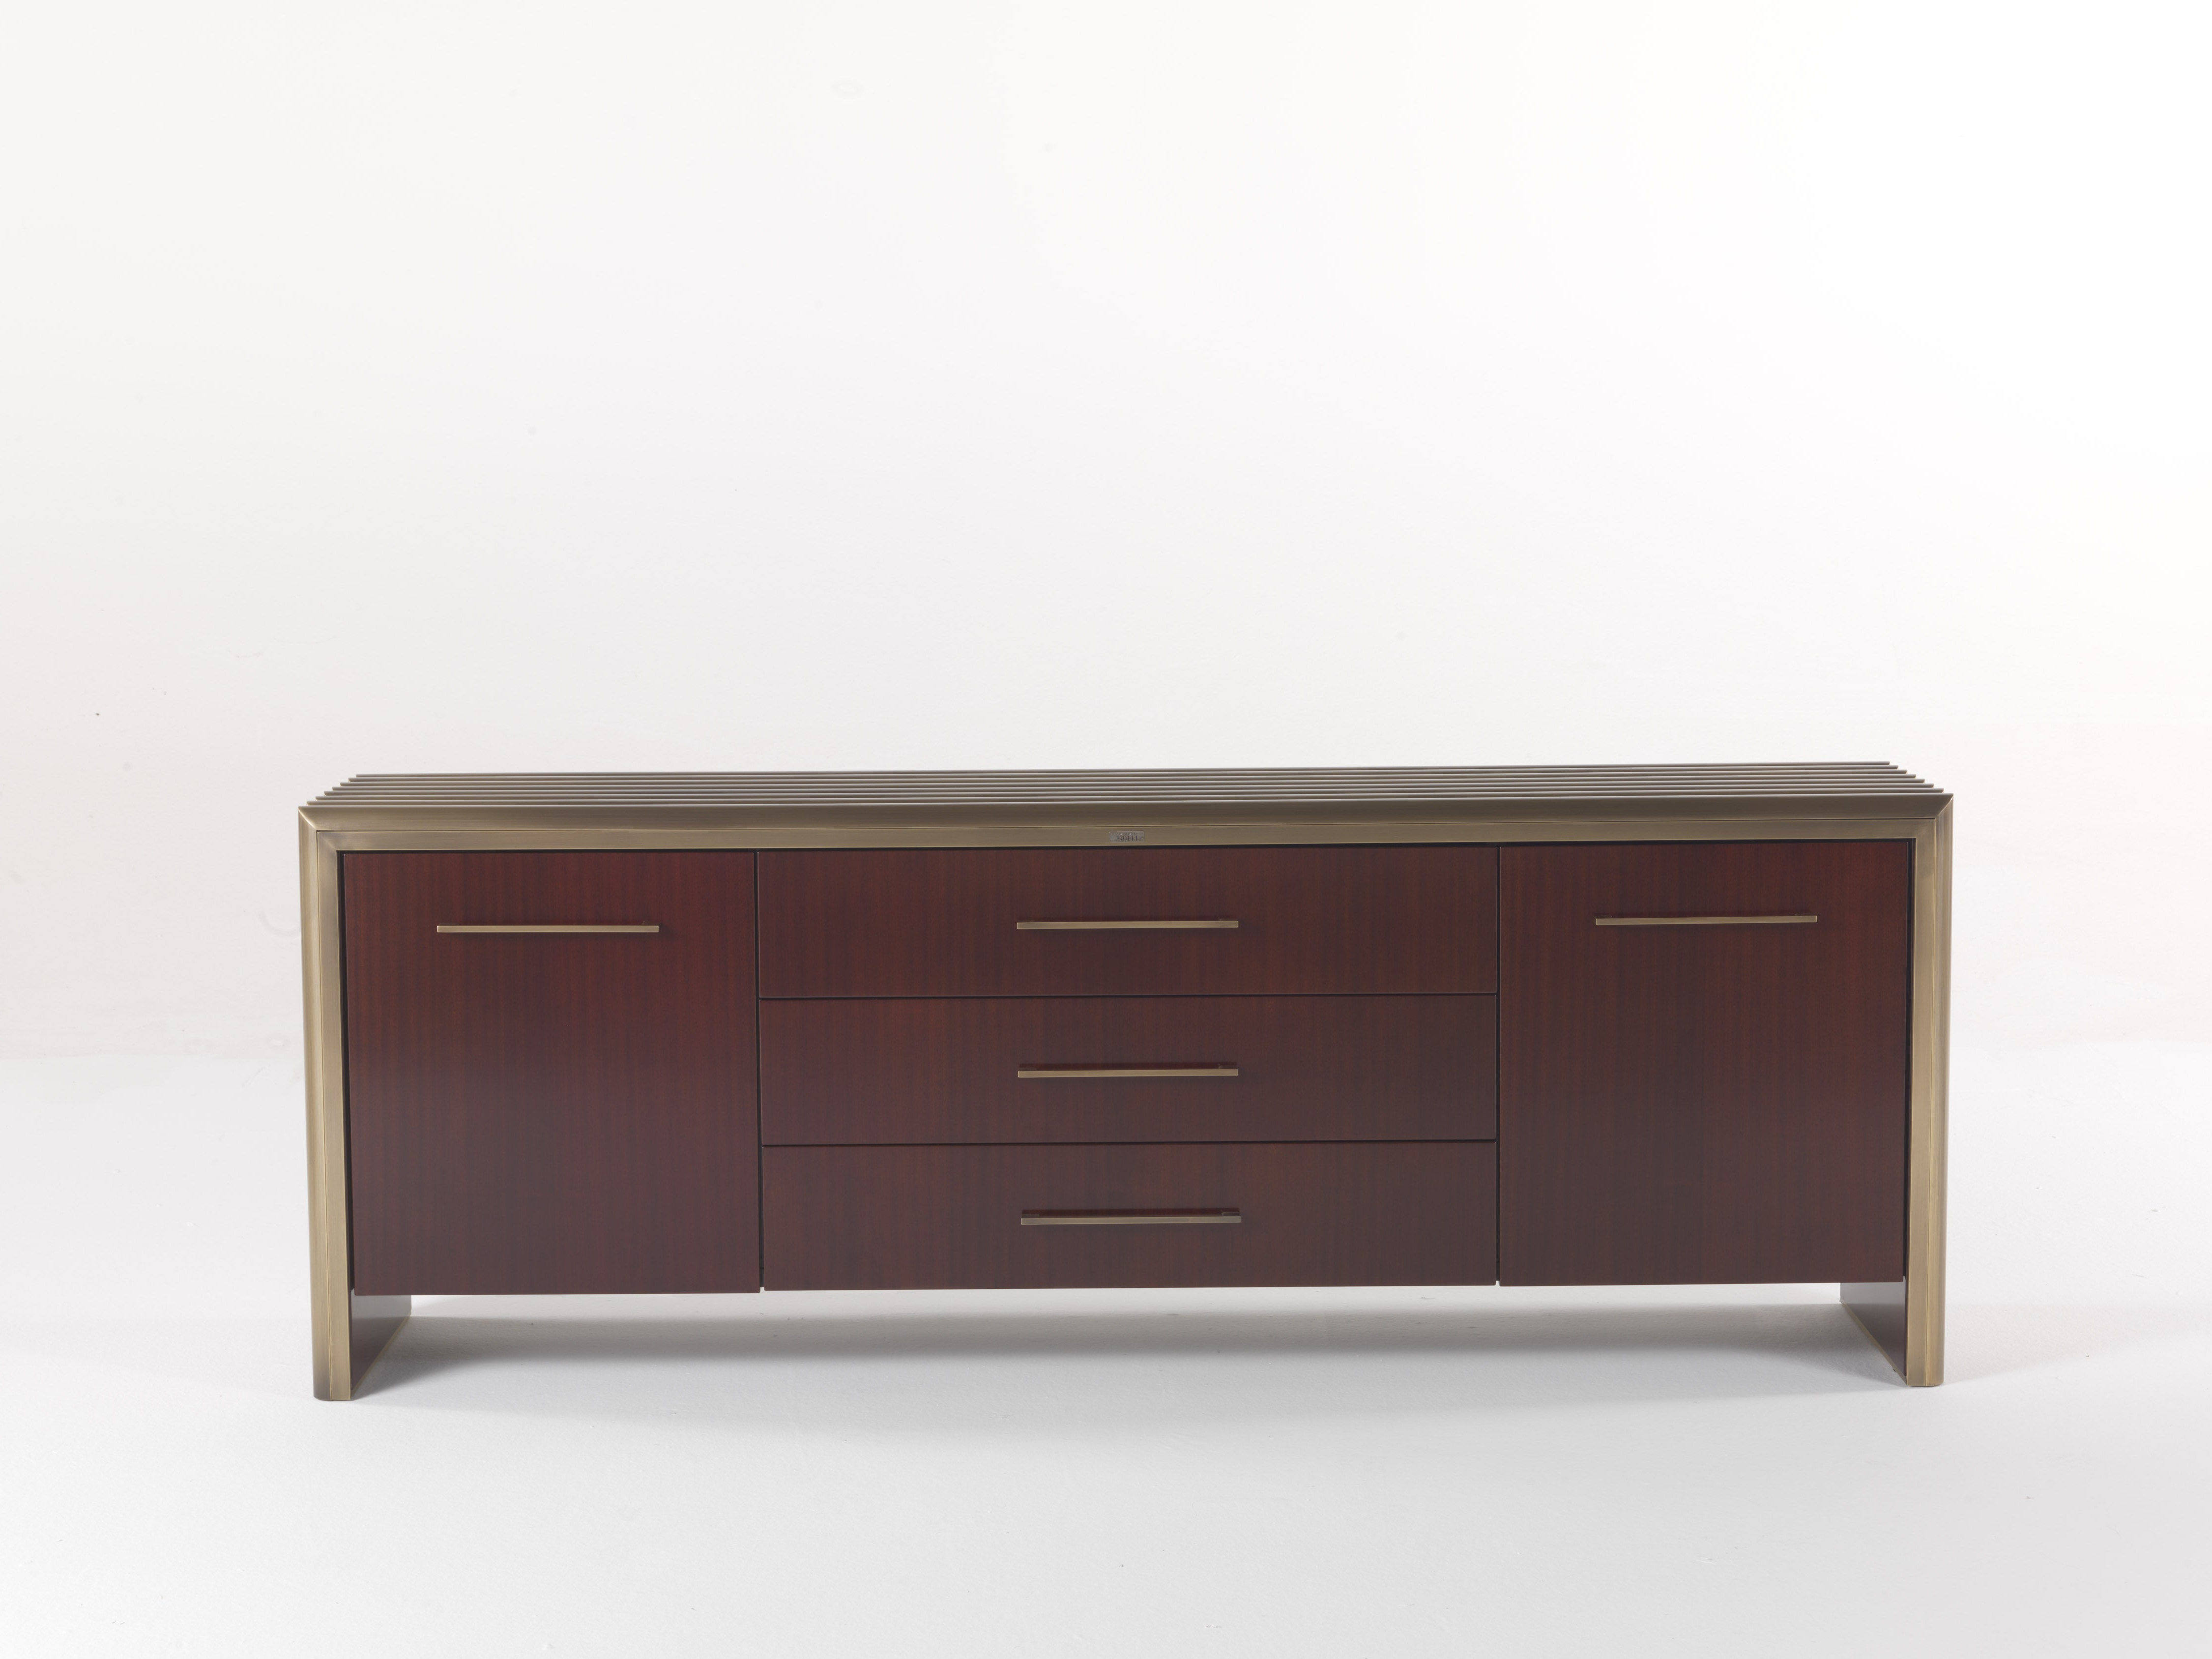 Famous Gianfranco Ferré Tate Sideboard In Wood And Brass For Sale Intended For Tate Sideboards (Gallery 13 of 20)